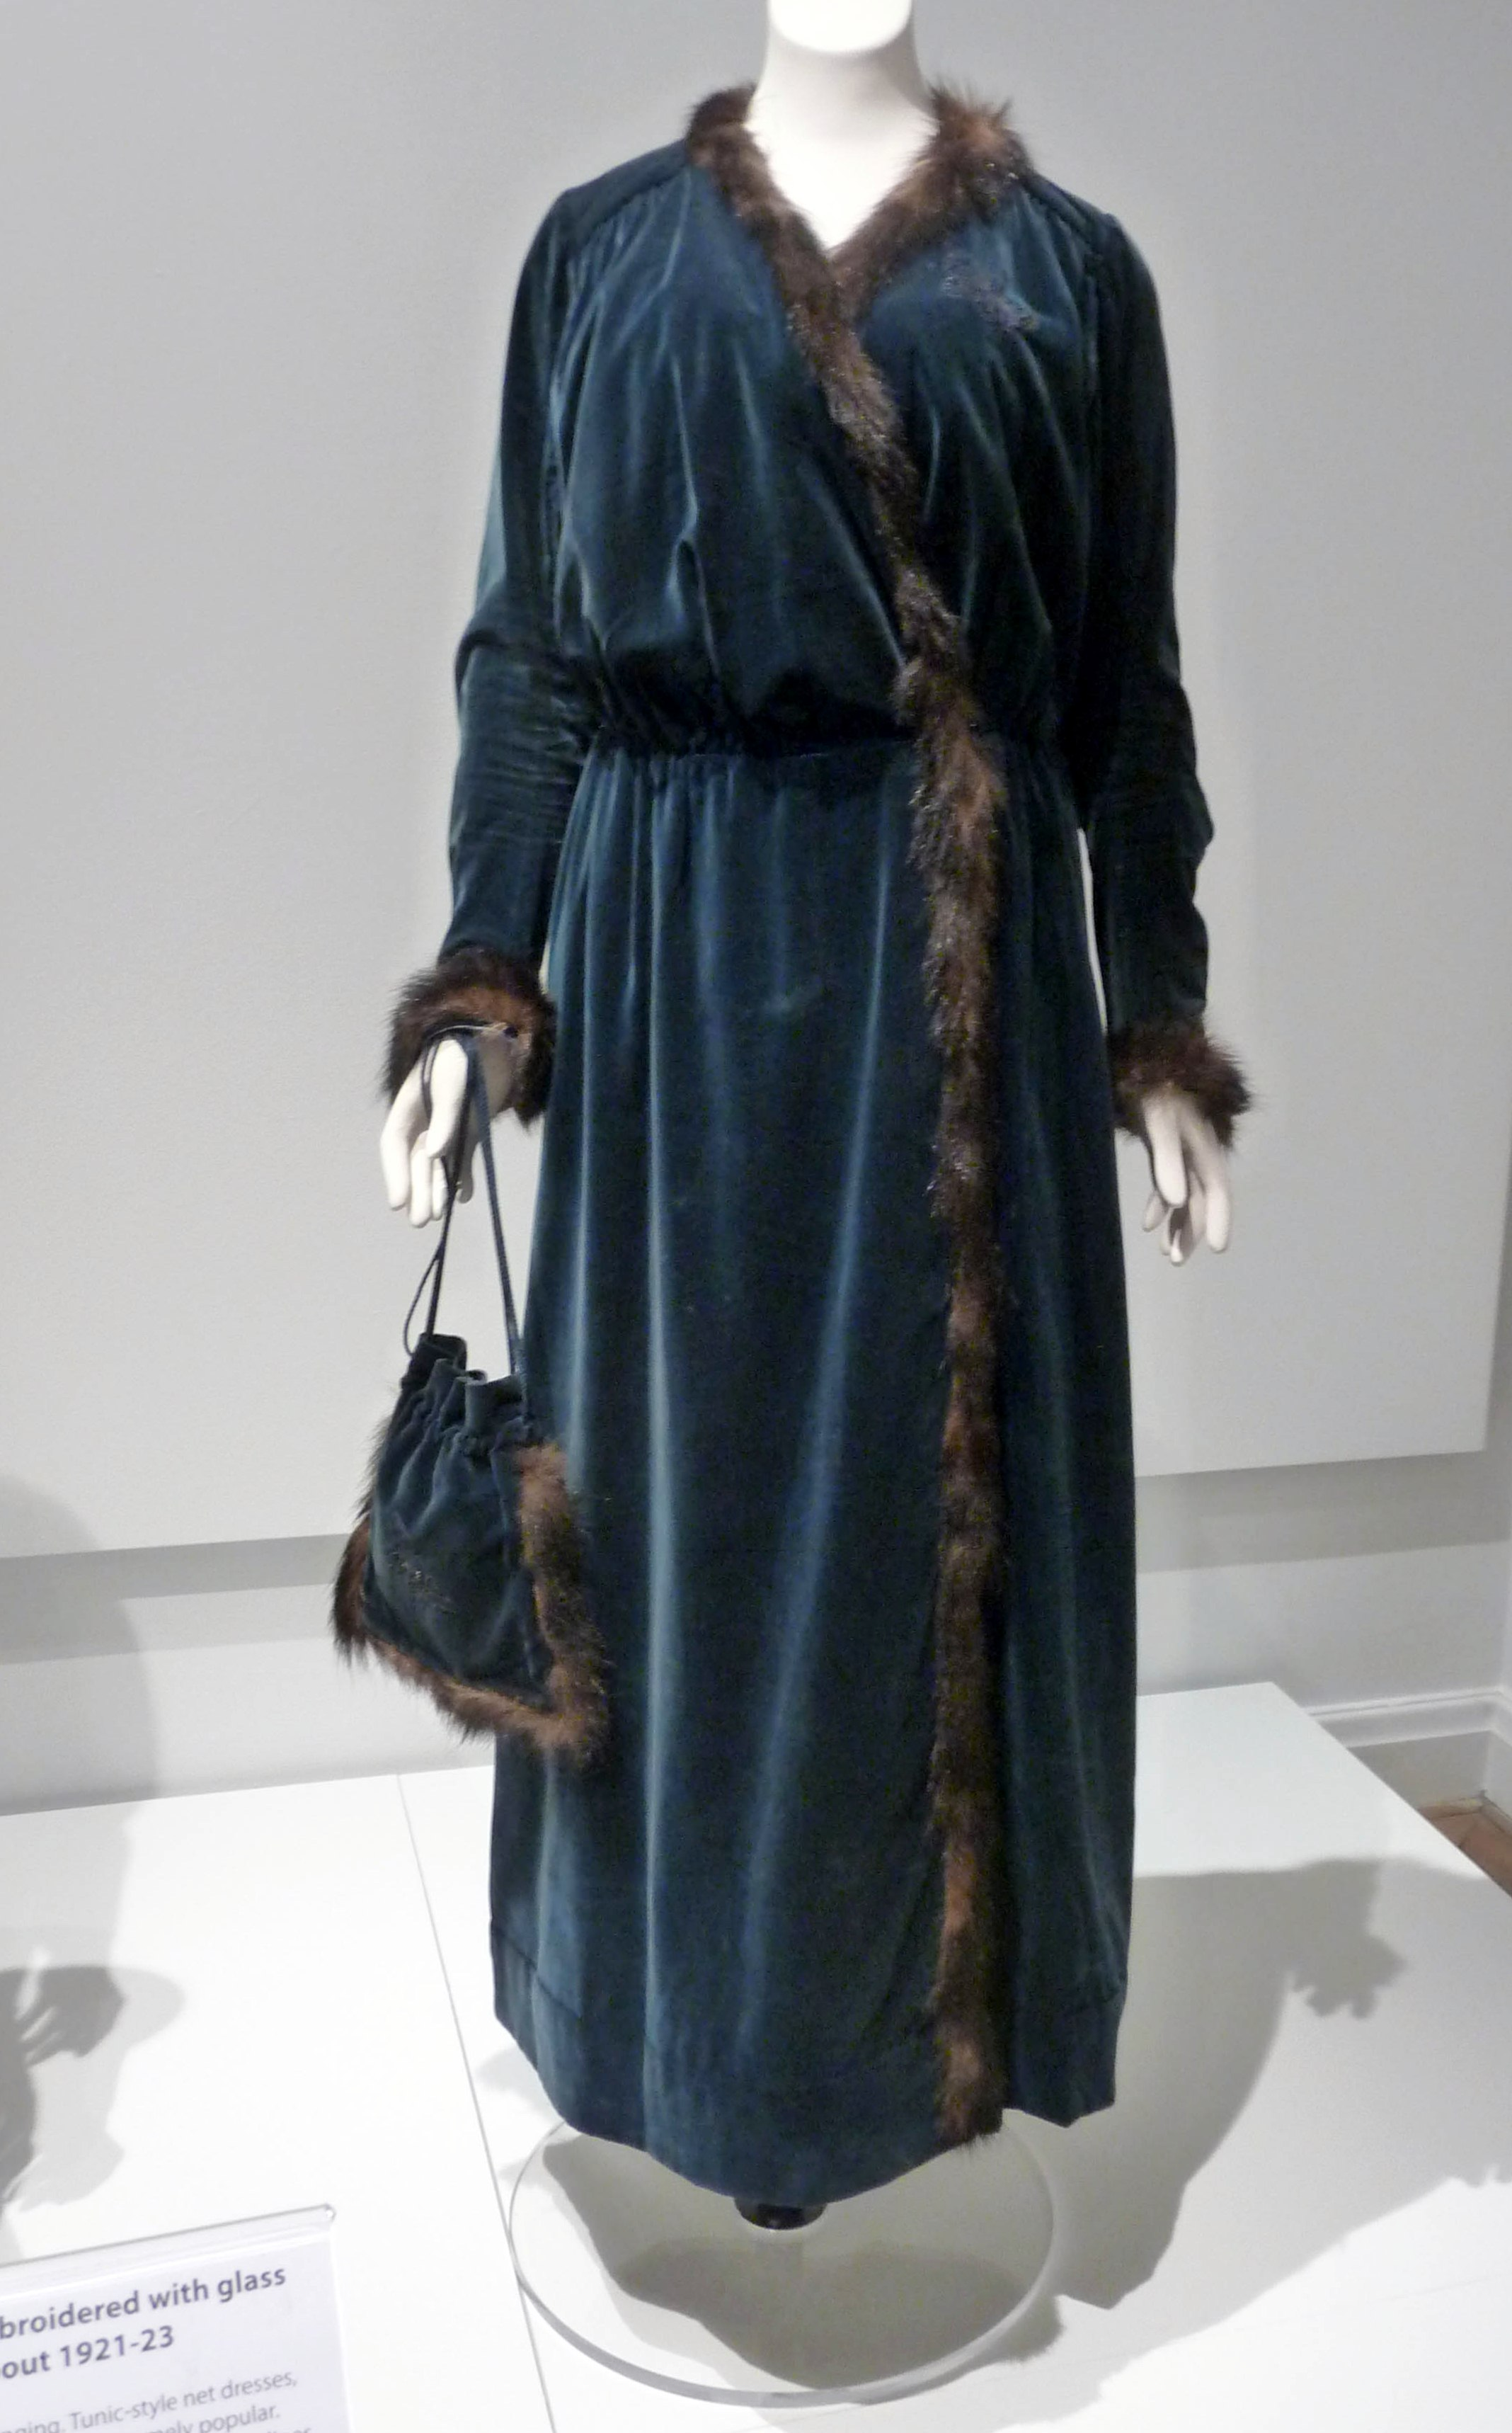 DAY DRESS and matching drawstring handbag, cotton velvet trimmed with fox fur, circa 1914-16. This design was influenced by the work of French designer Paul Poiret, and was worn by Emilt Tinne of Liverpool.